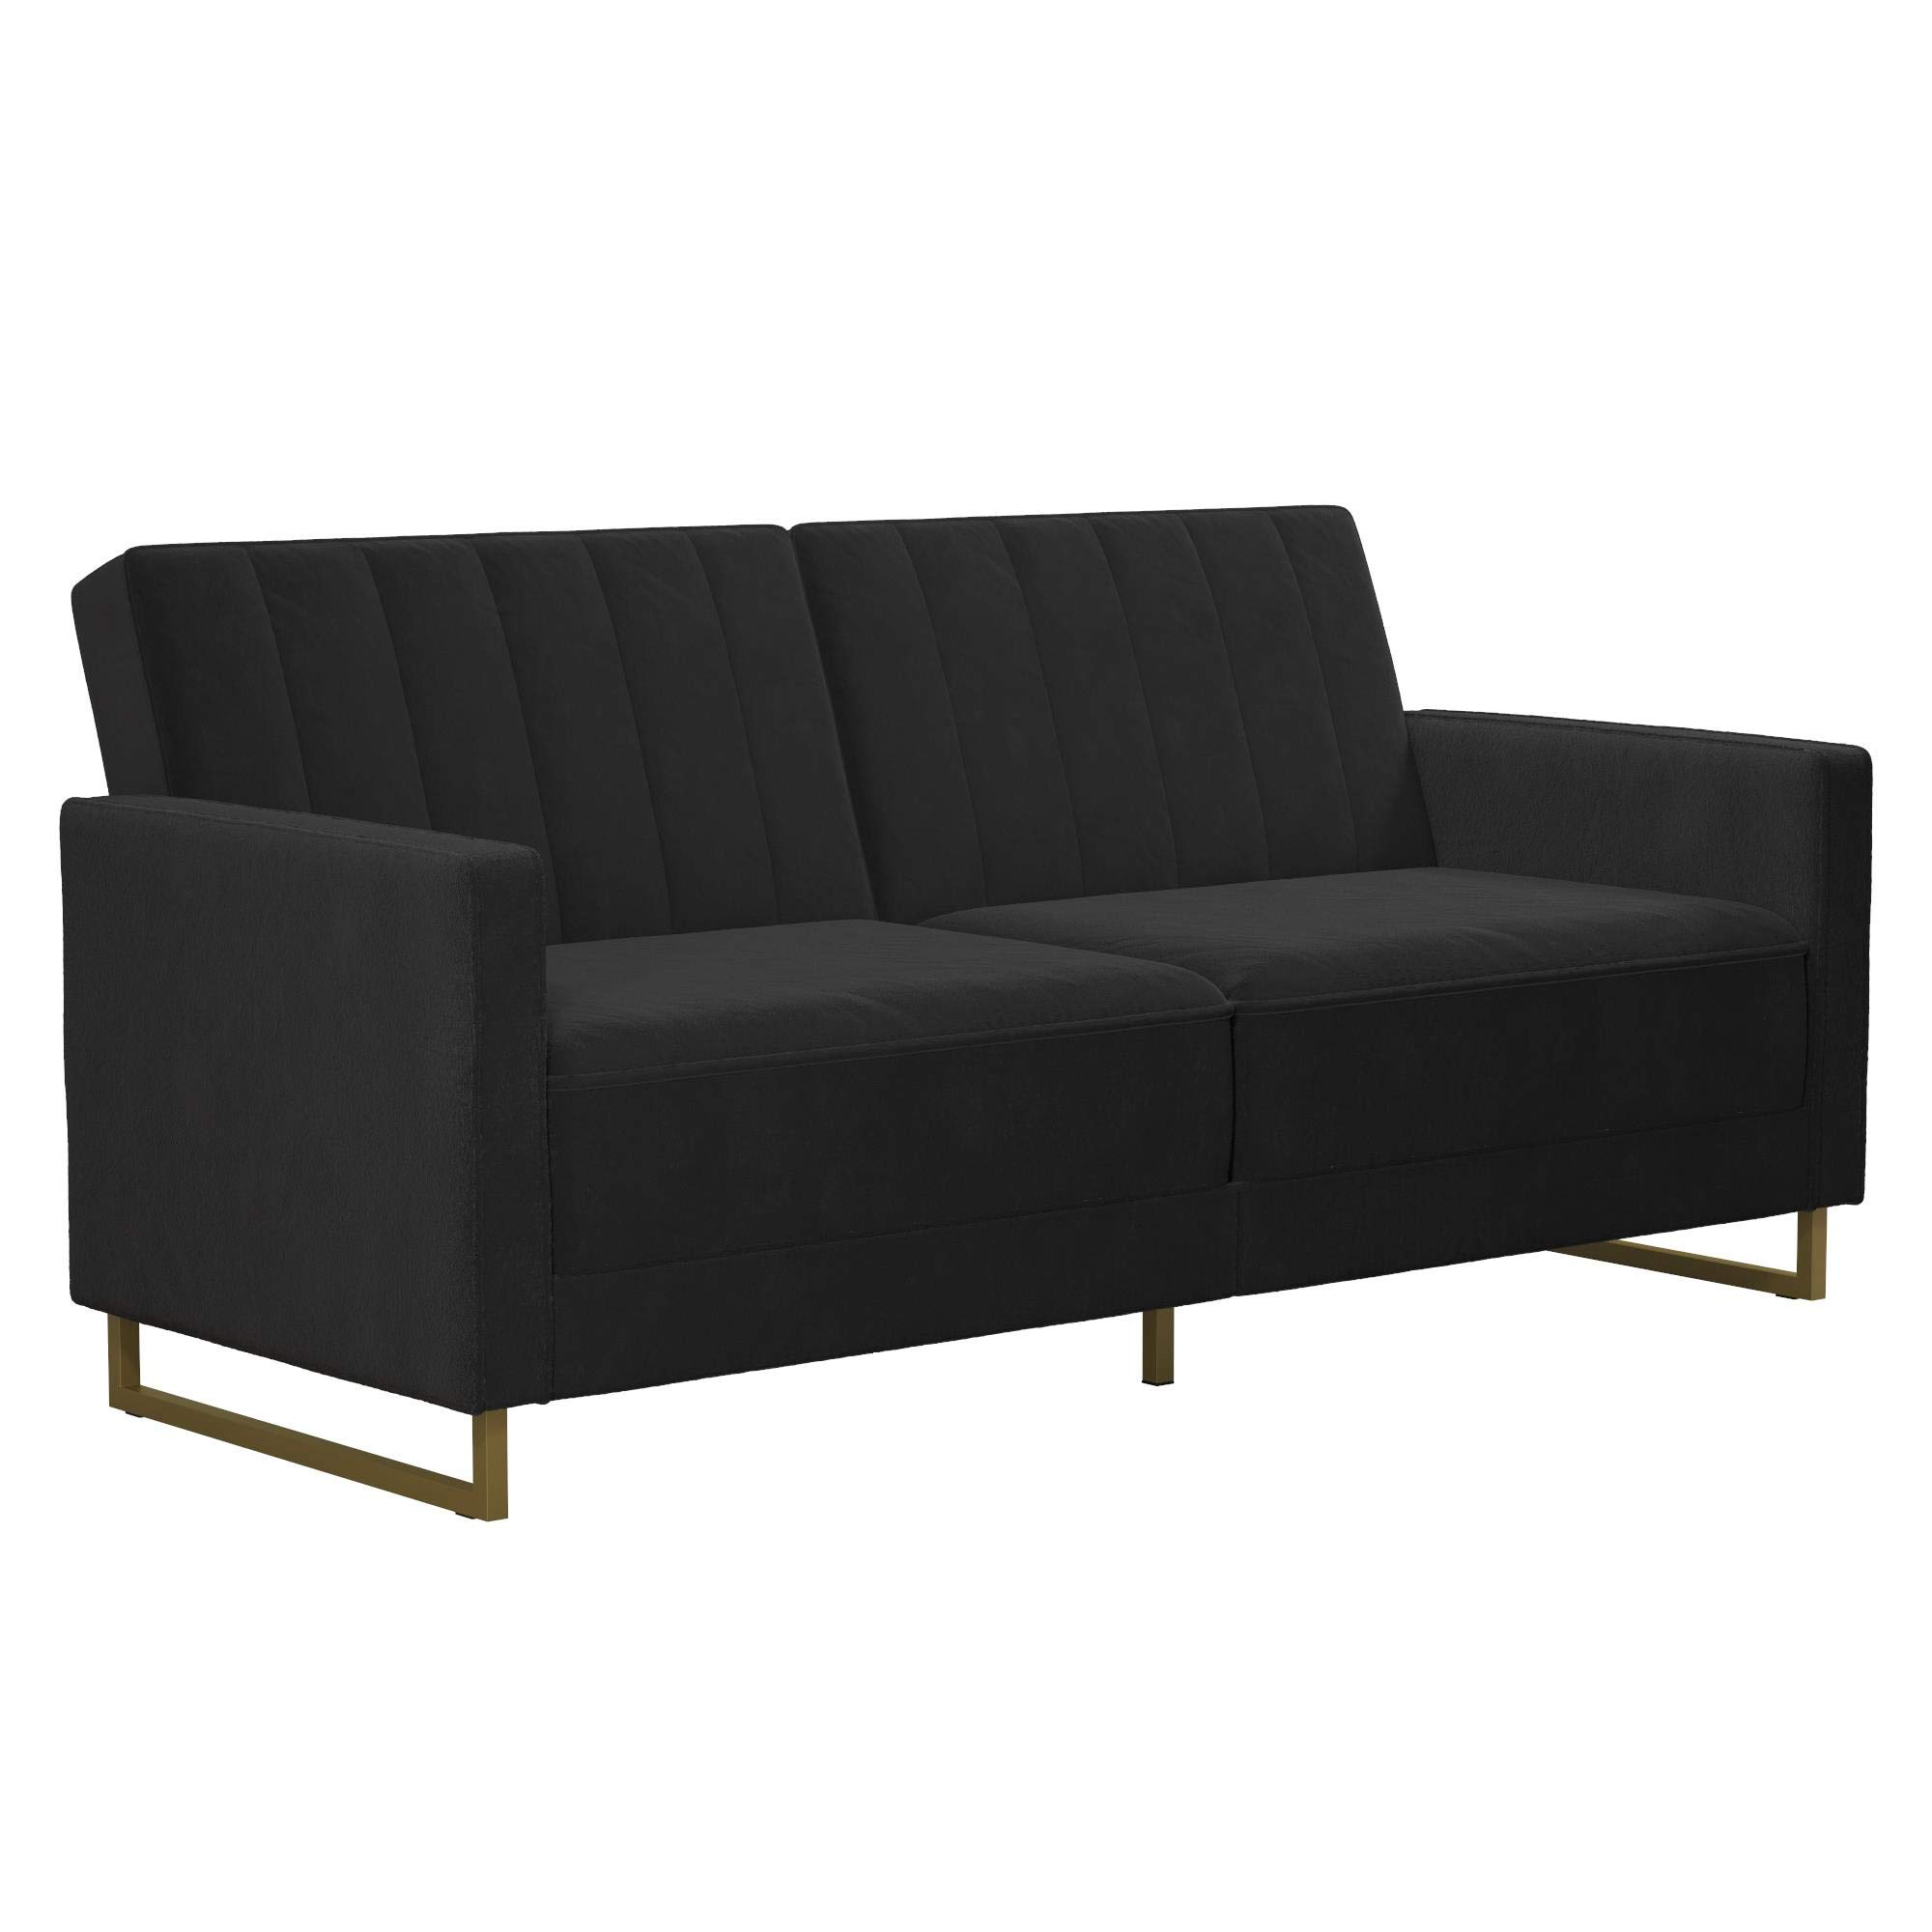 Novogratz Skylar Coil, Modern Sofa Bed and Couch, Black Velvet Futon by Novogratz